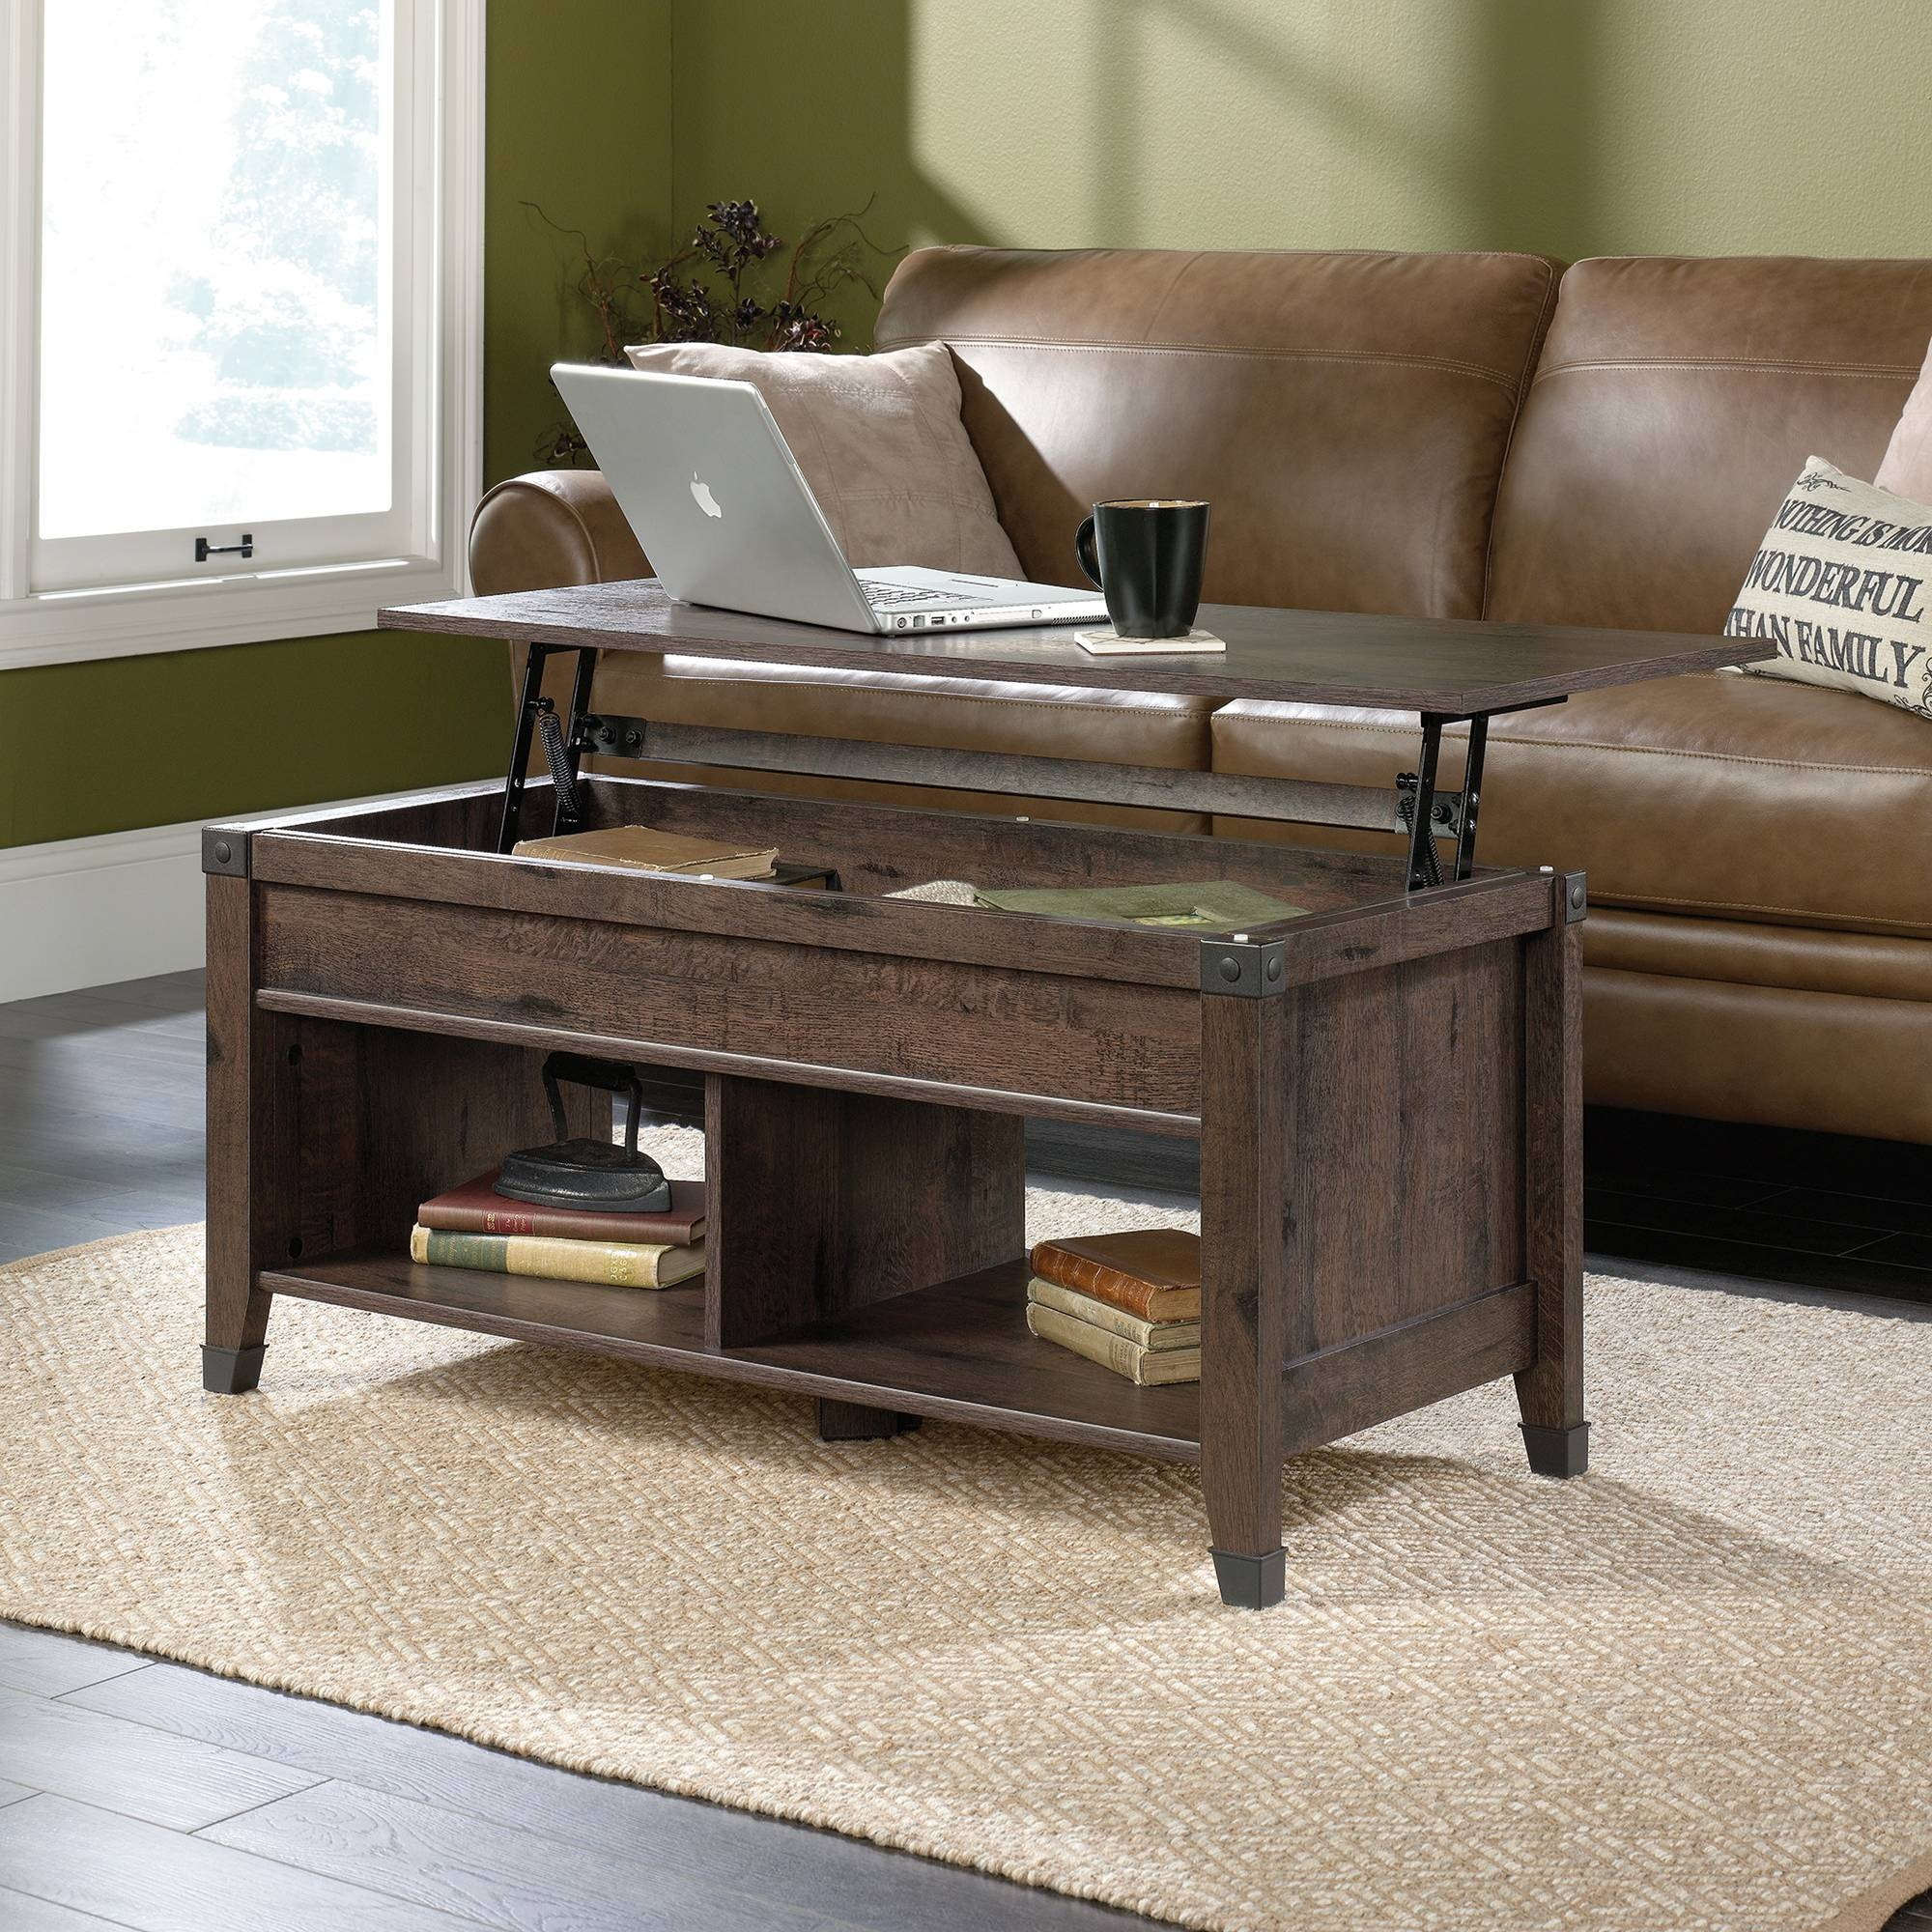 Carson Forge | Lift Top Coffee Table | 420421 | Sauder For Coffee Tables With Lift Up Top (Photo 15 of 30)